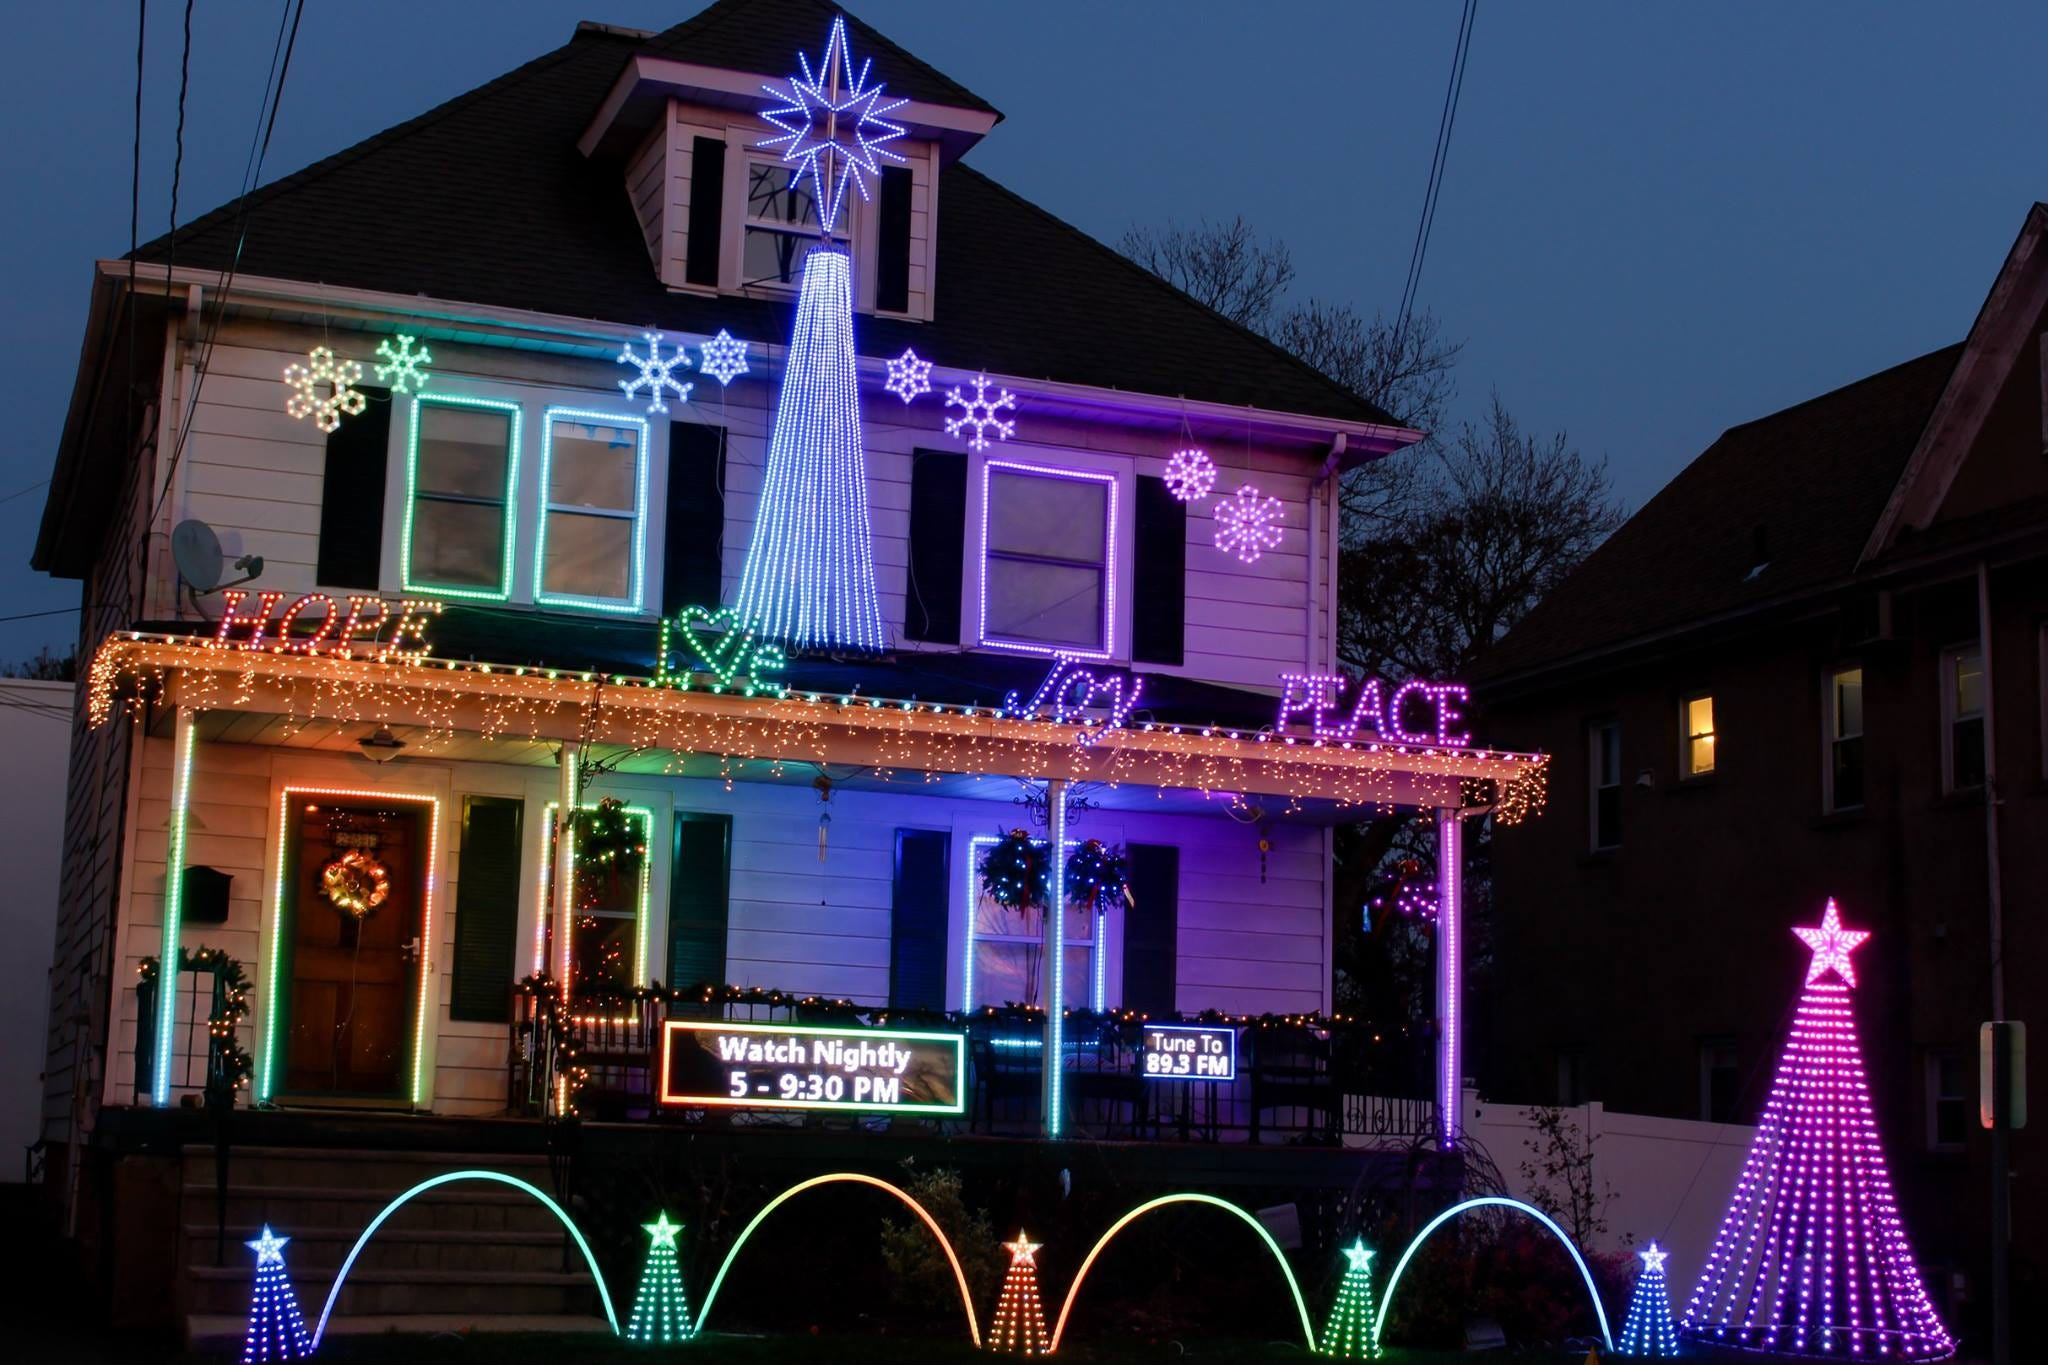 Christmas home lighting Fairway Village Christmas At The Nietzers Display Elle Decor Nj Christmas Lights Where To See The Best Brightest Home Displays